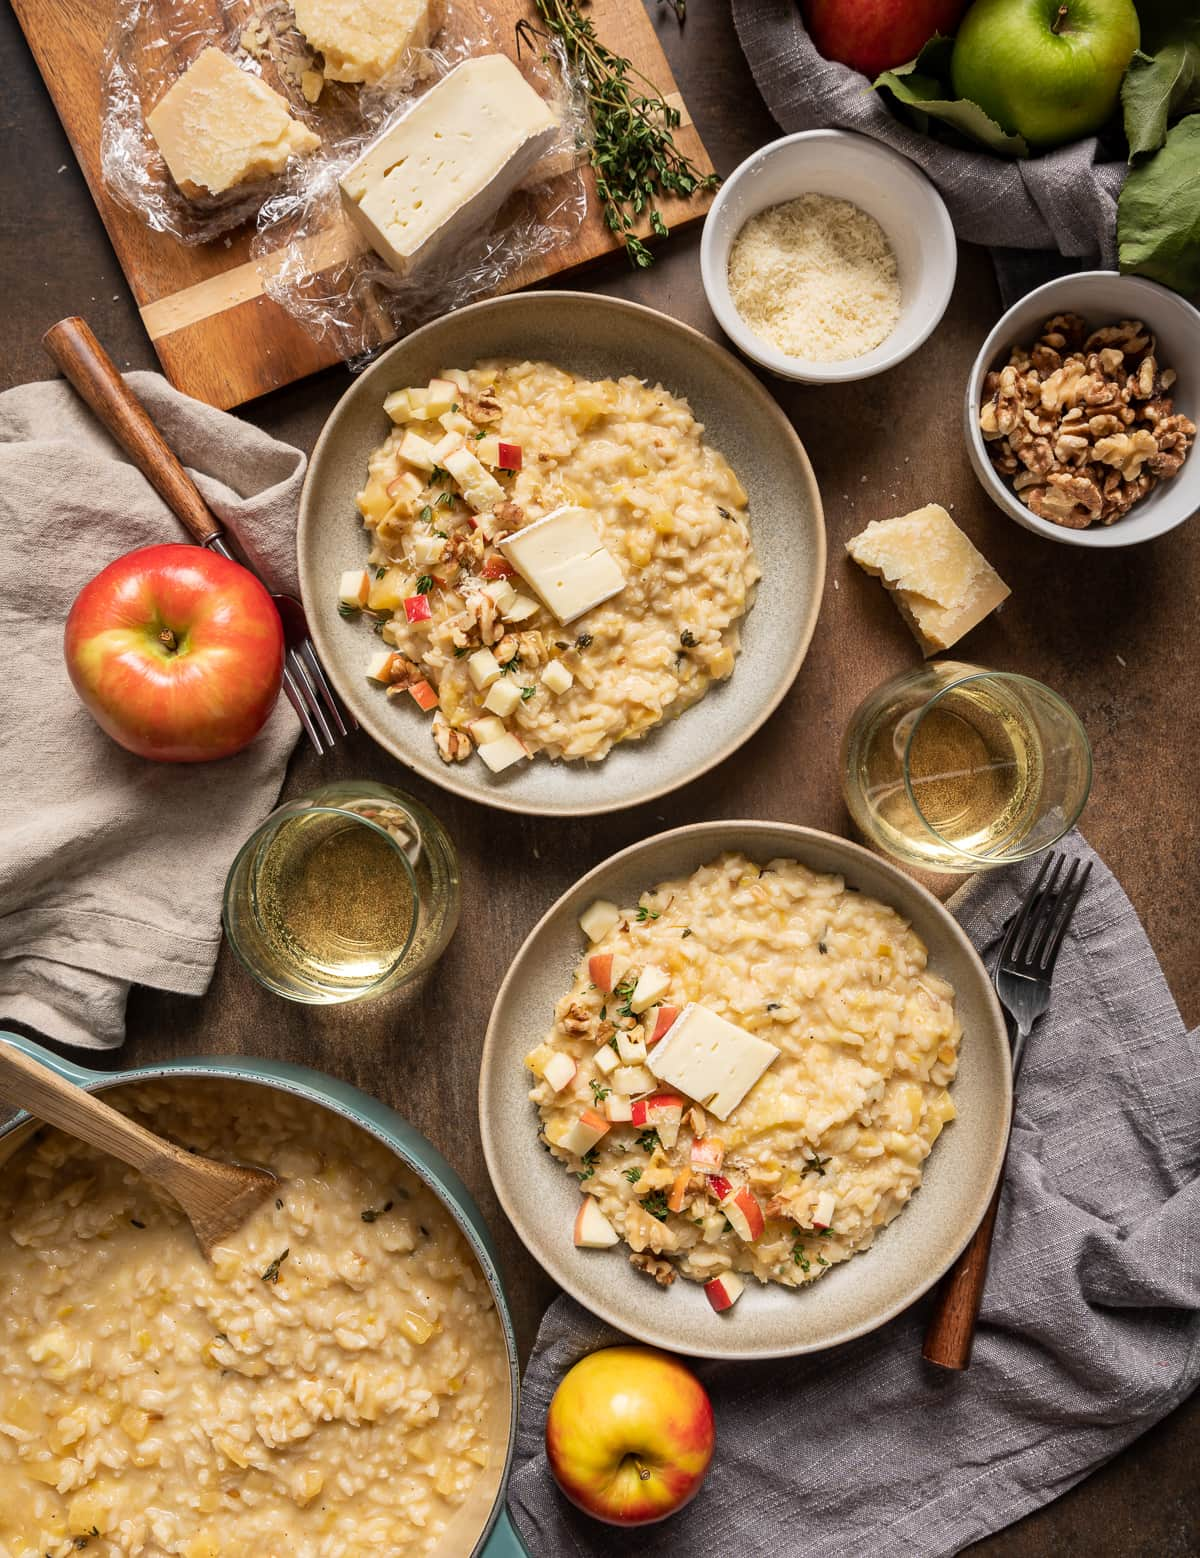 bowls of brie risotto with apples and walnuts glasses of wine pot of brie risotto whole apples cutting board with brie and parmesan cheese